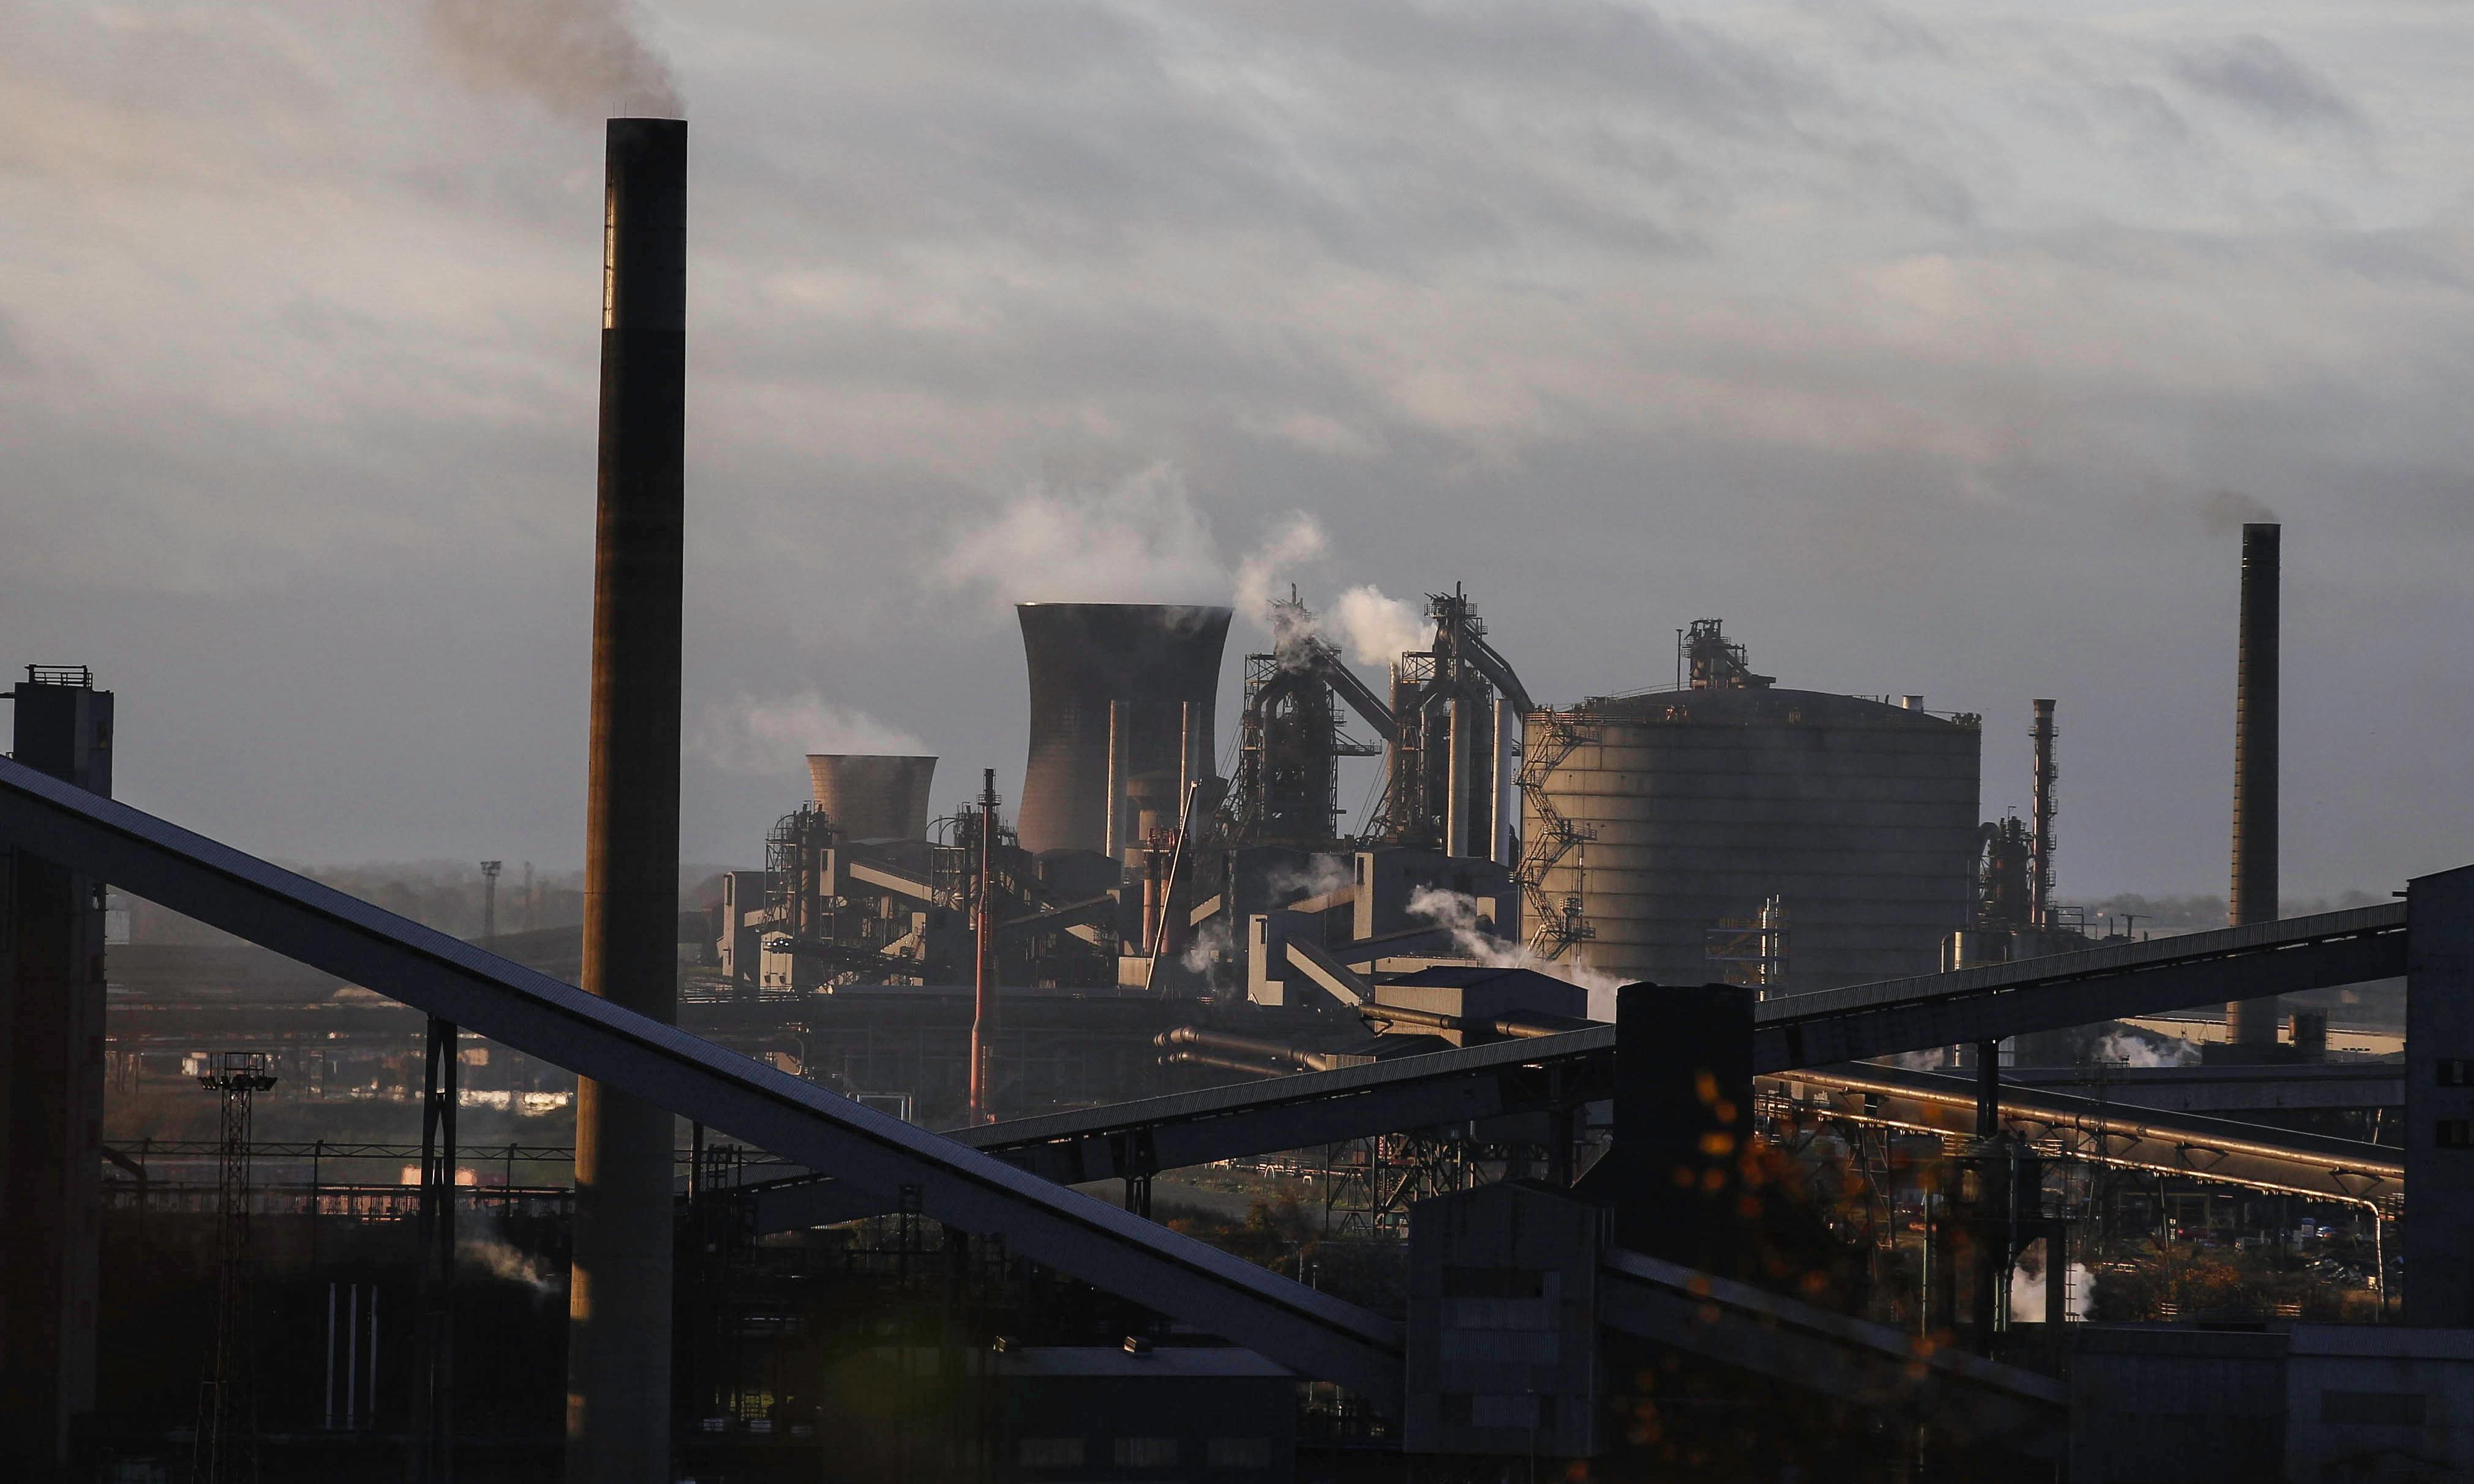 Oyak: Turkish buyer of British Steel with direct ties to the military